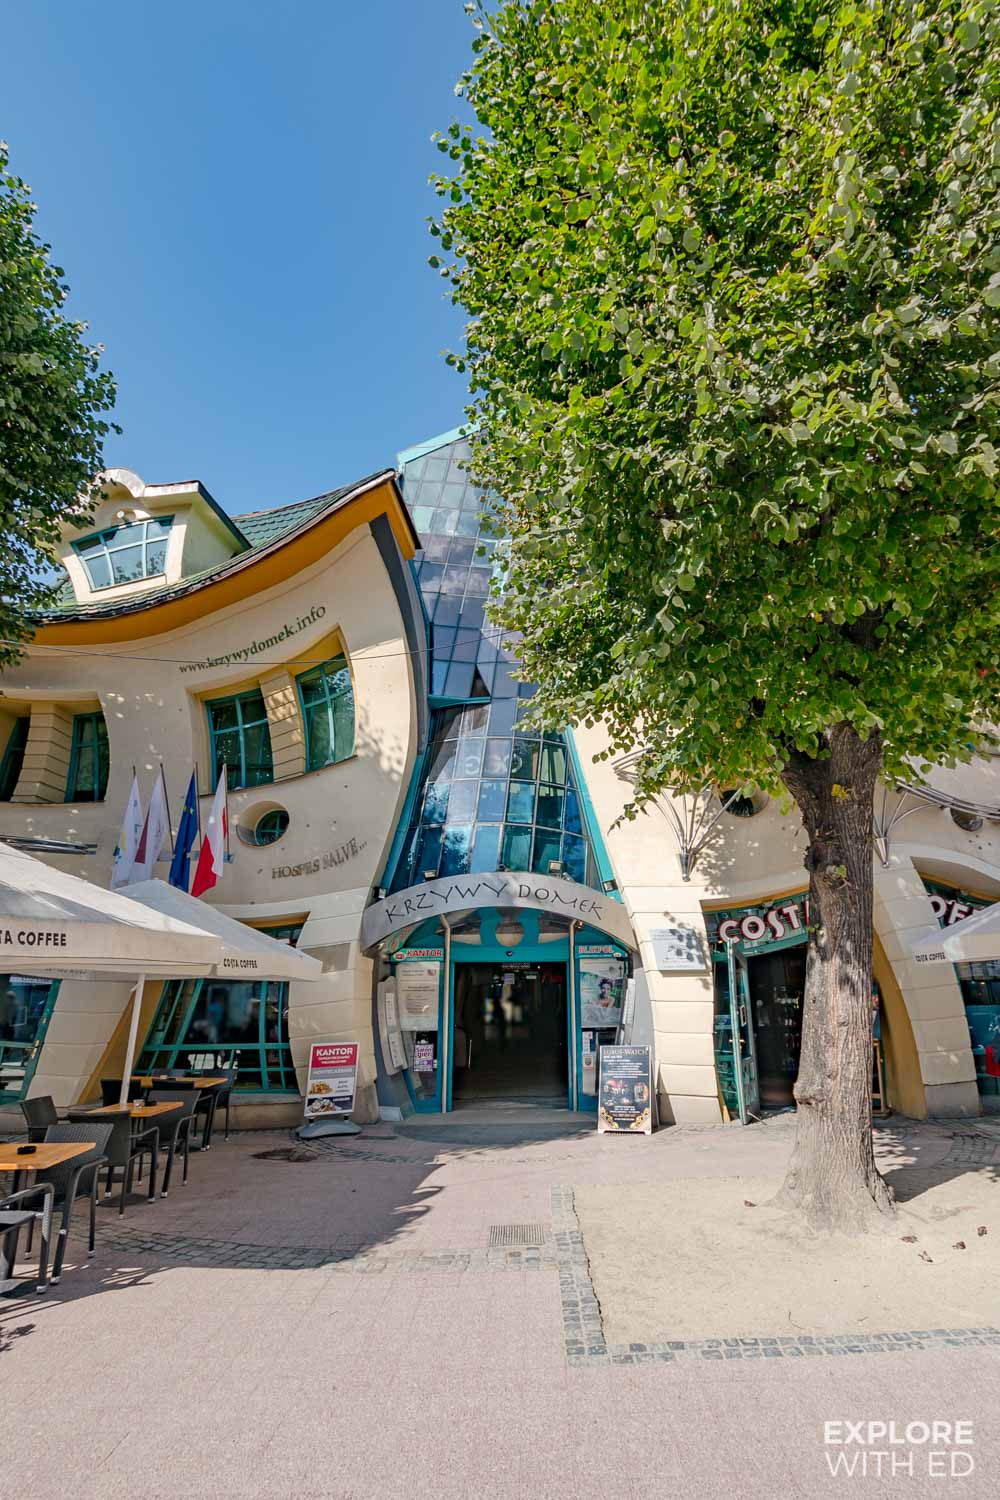 The Krzywy Domek - Crooked House in Sopot, Poland